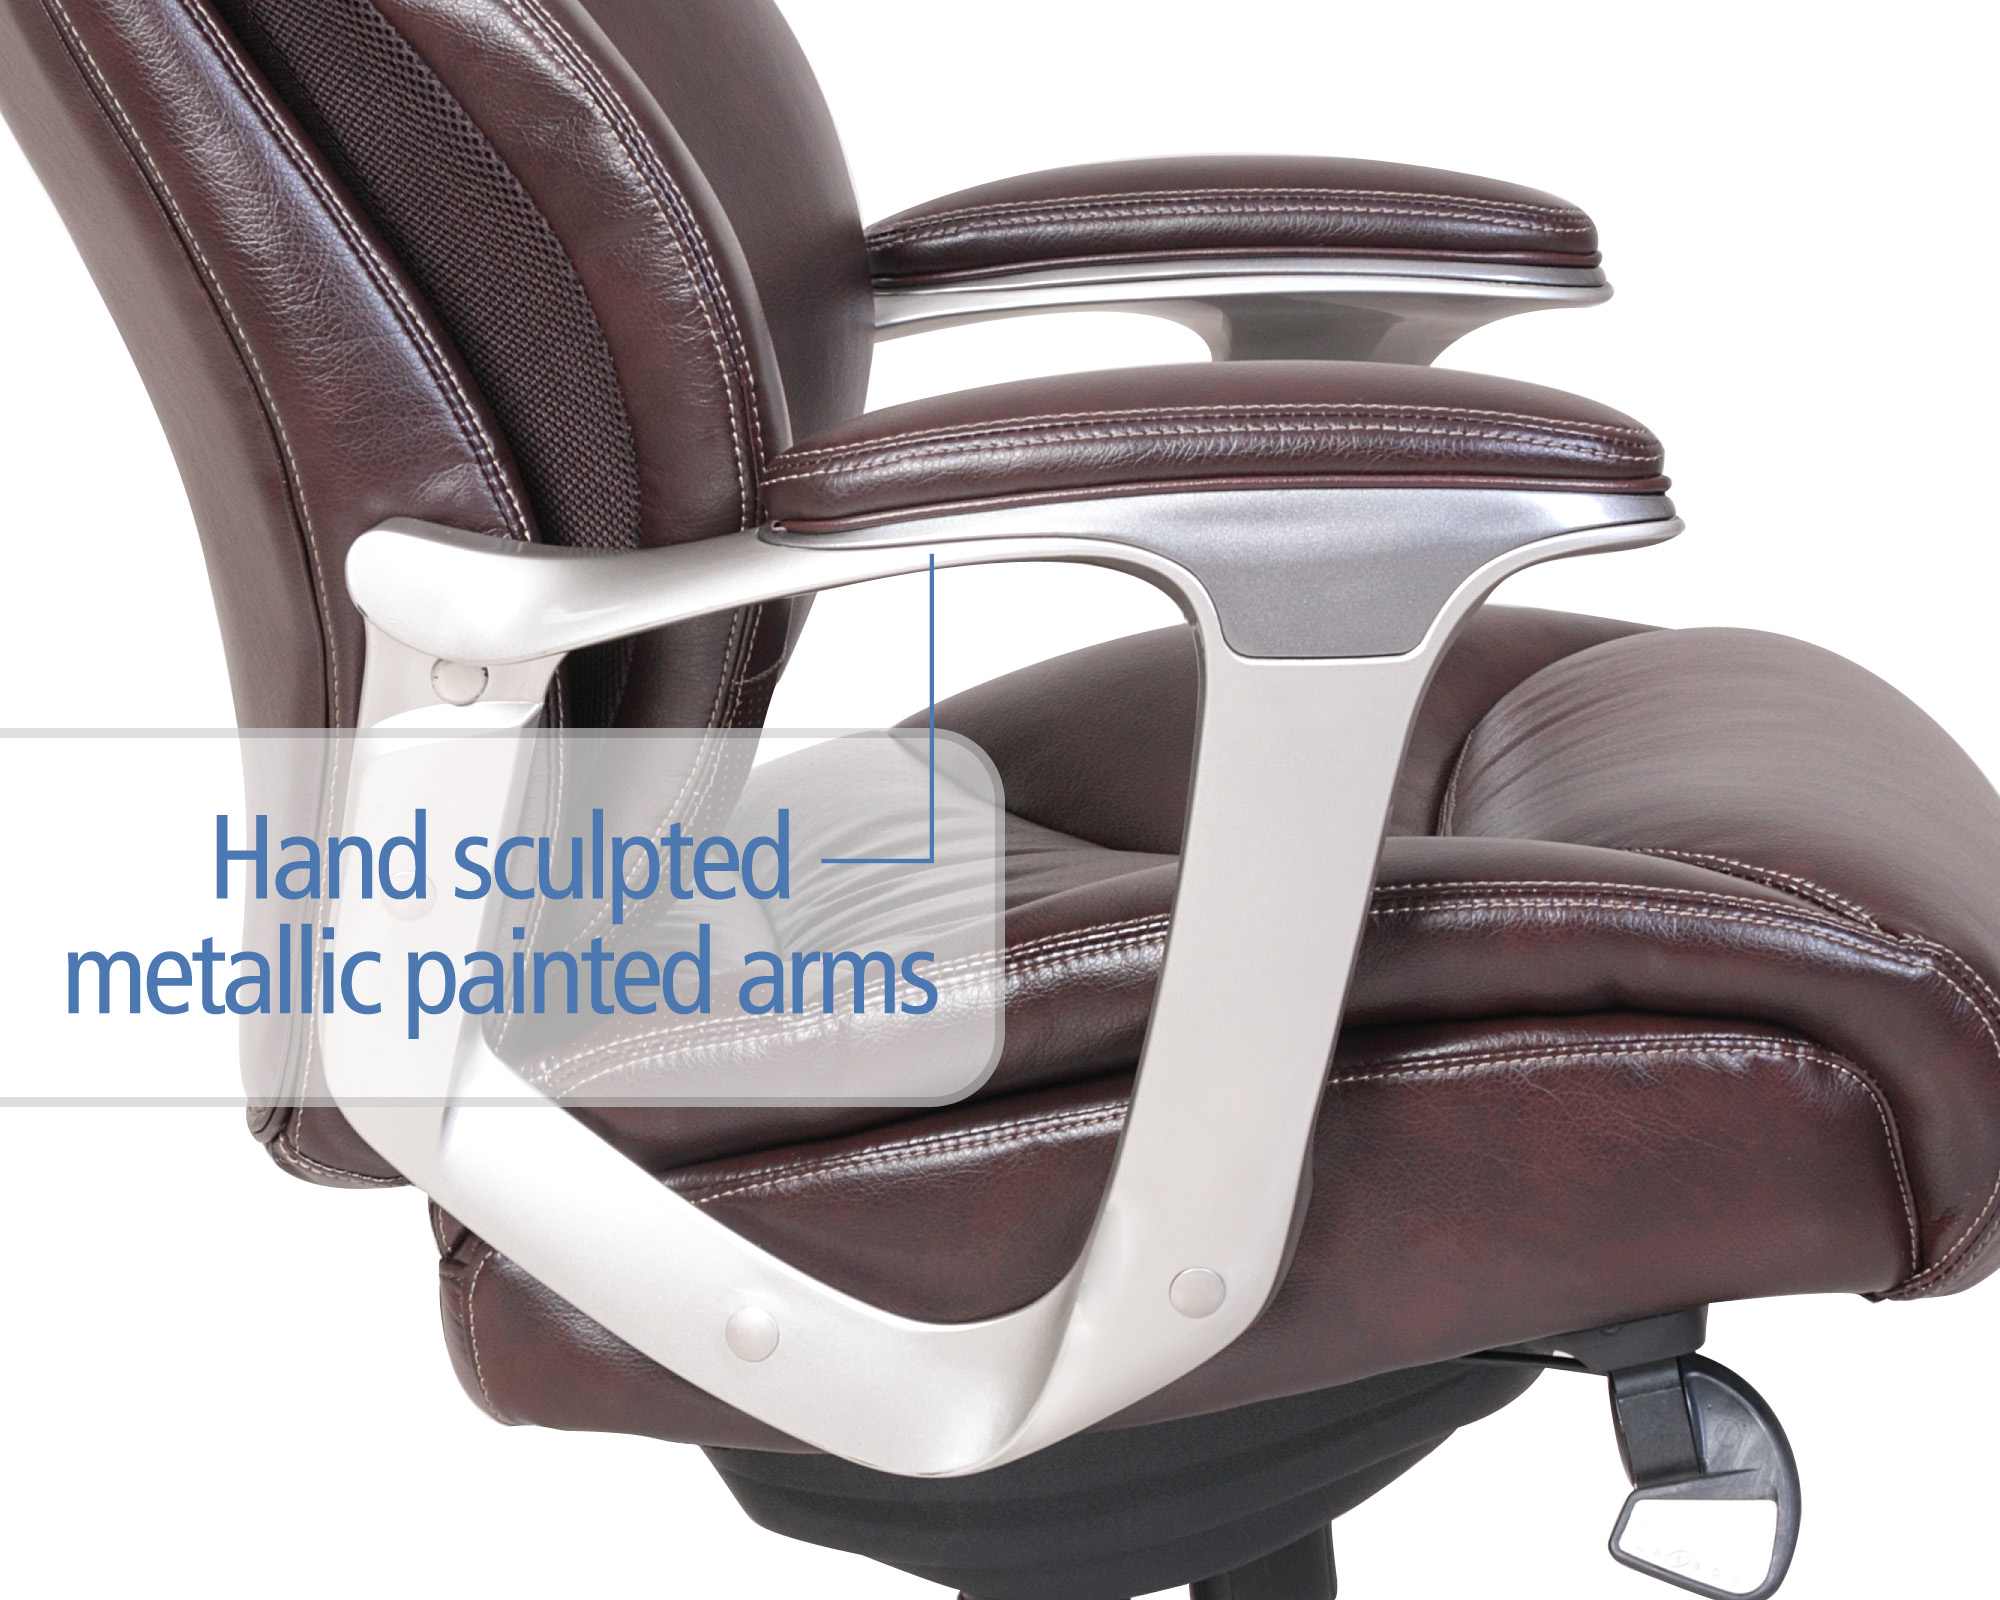 lazboy office chair armrest protectors la z boy cantania comfort core innovations air technology executive